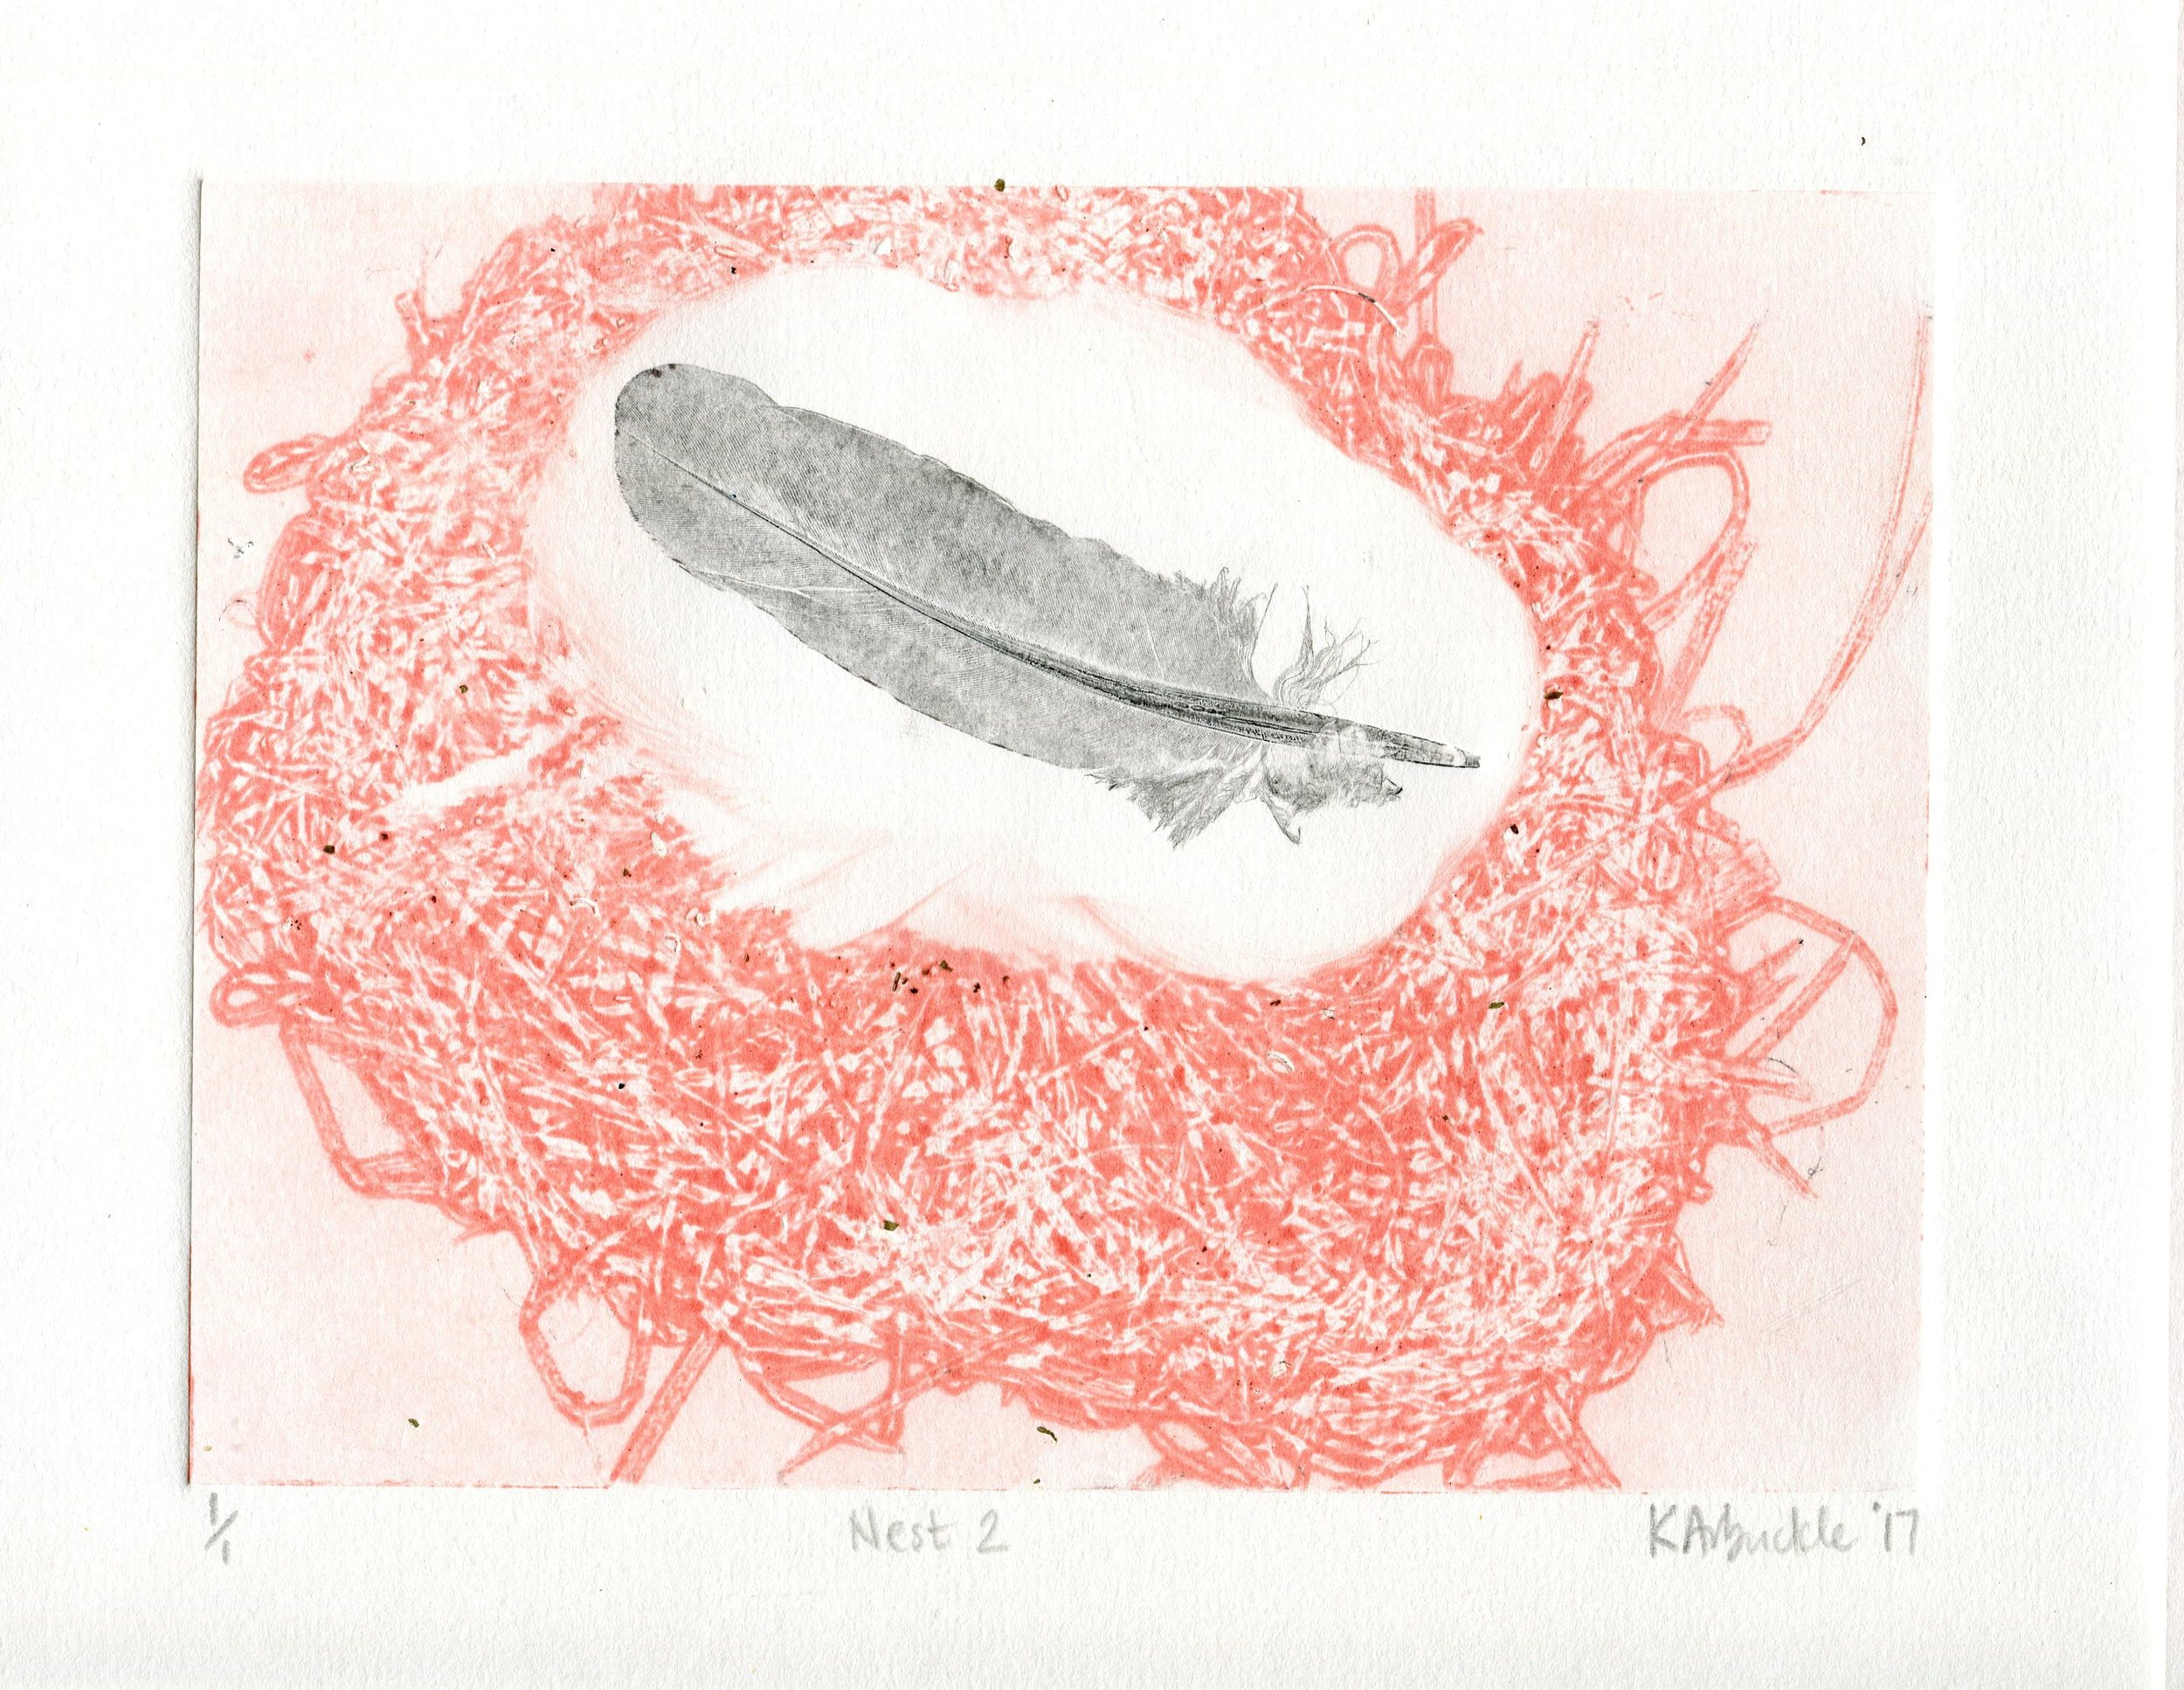 109B KATHY ARBUCKLE, NEST 2, MONOTYPE  ON PAPER